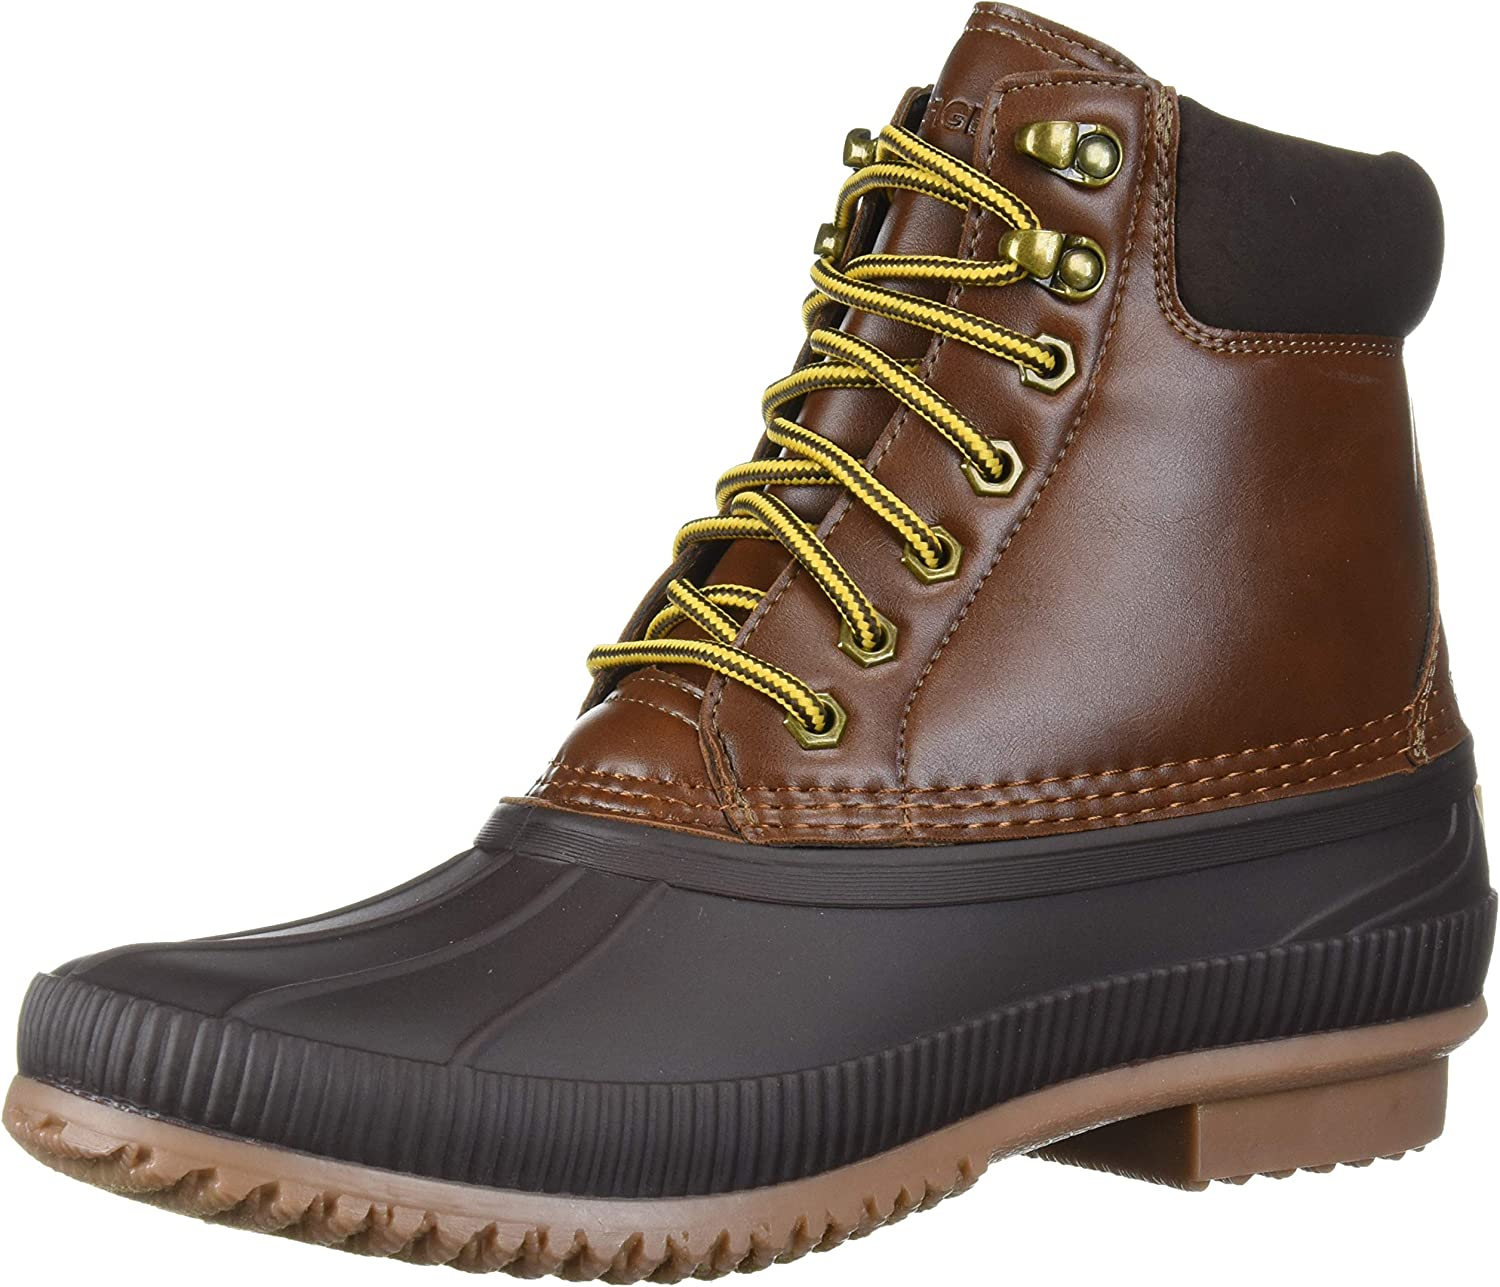 Tommy Hilfiger Men's Online limited product Award-winning store Boot Rain Colins2